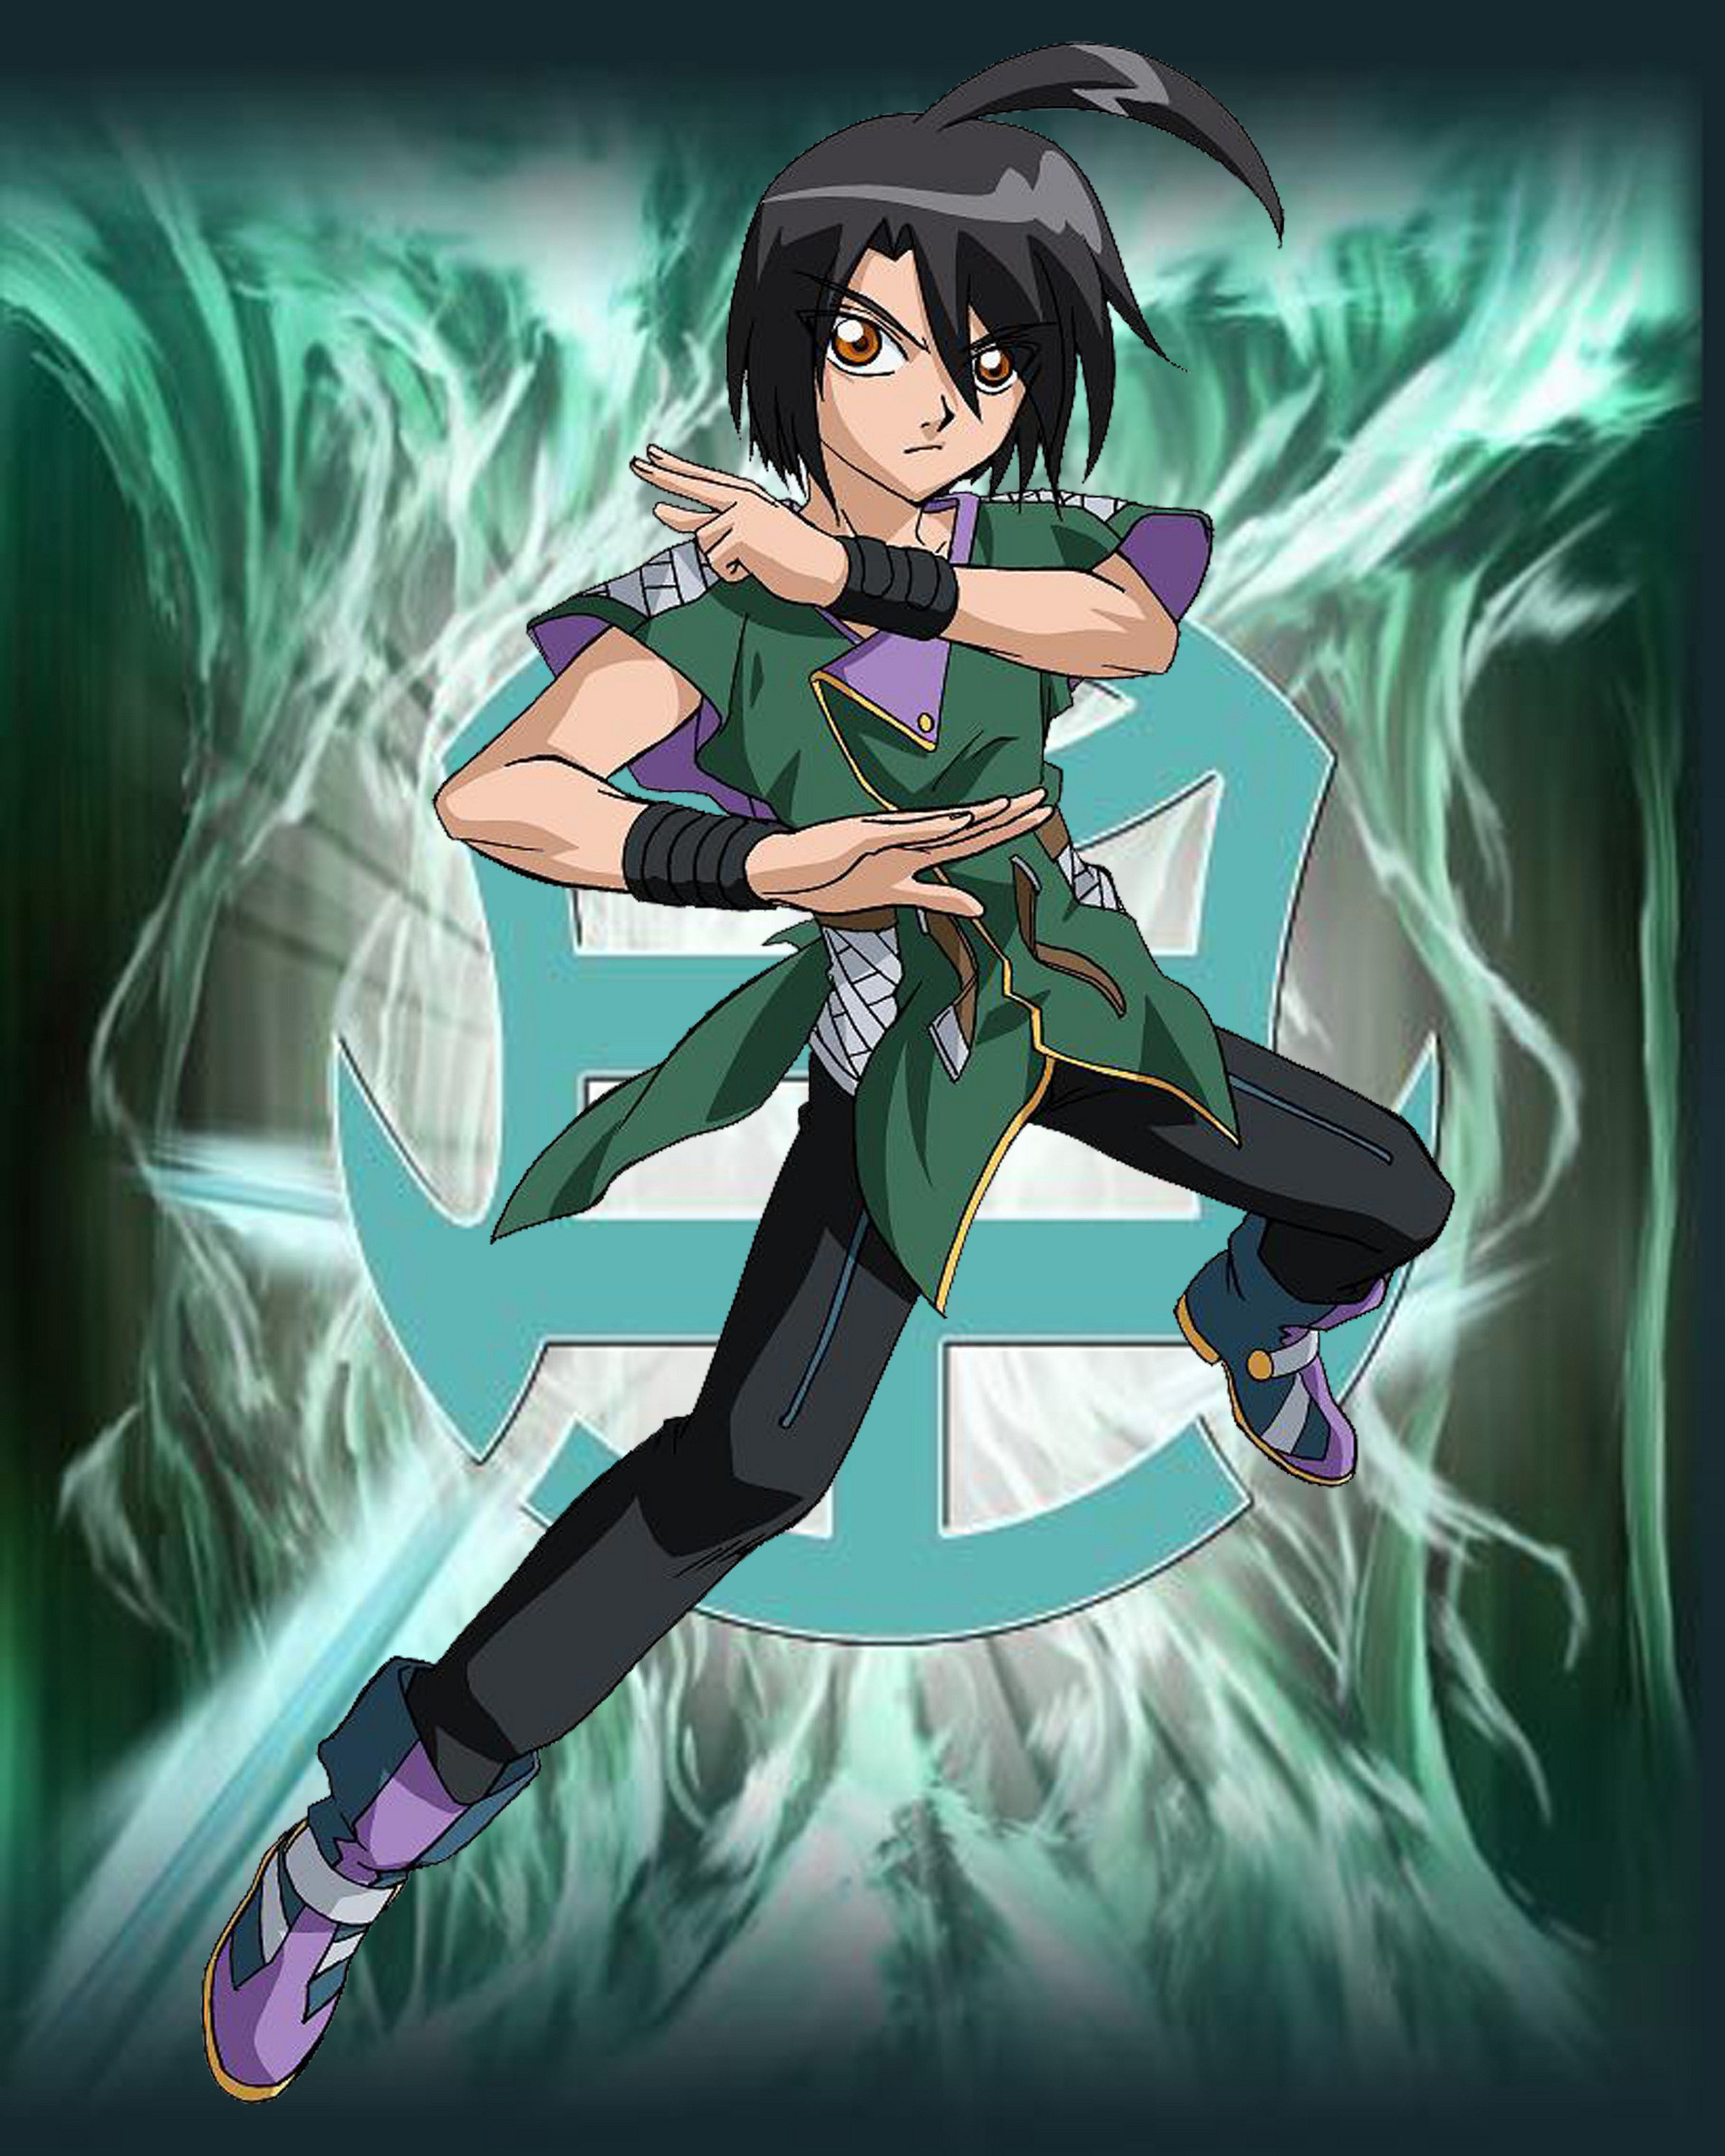 bakugan wallpaper 53 images